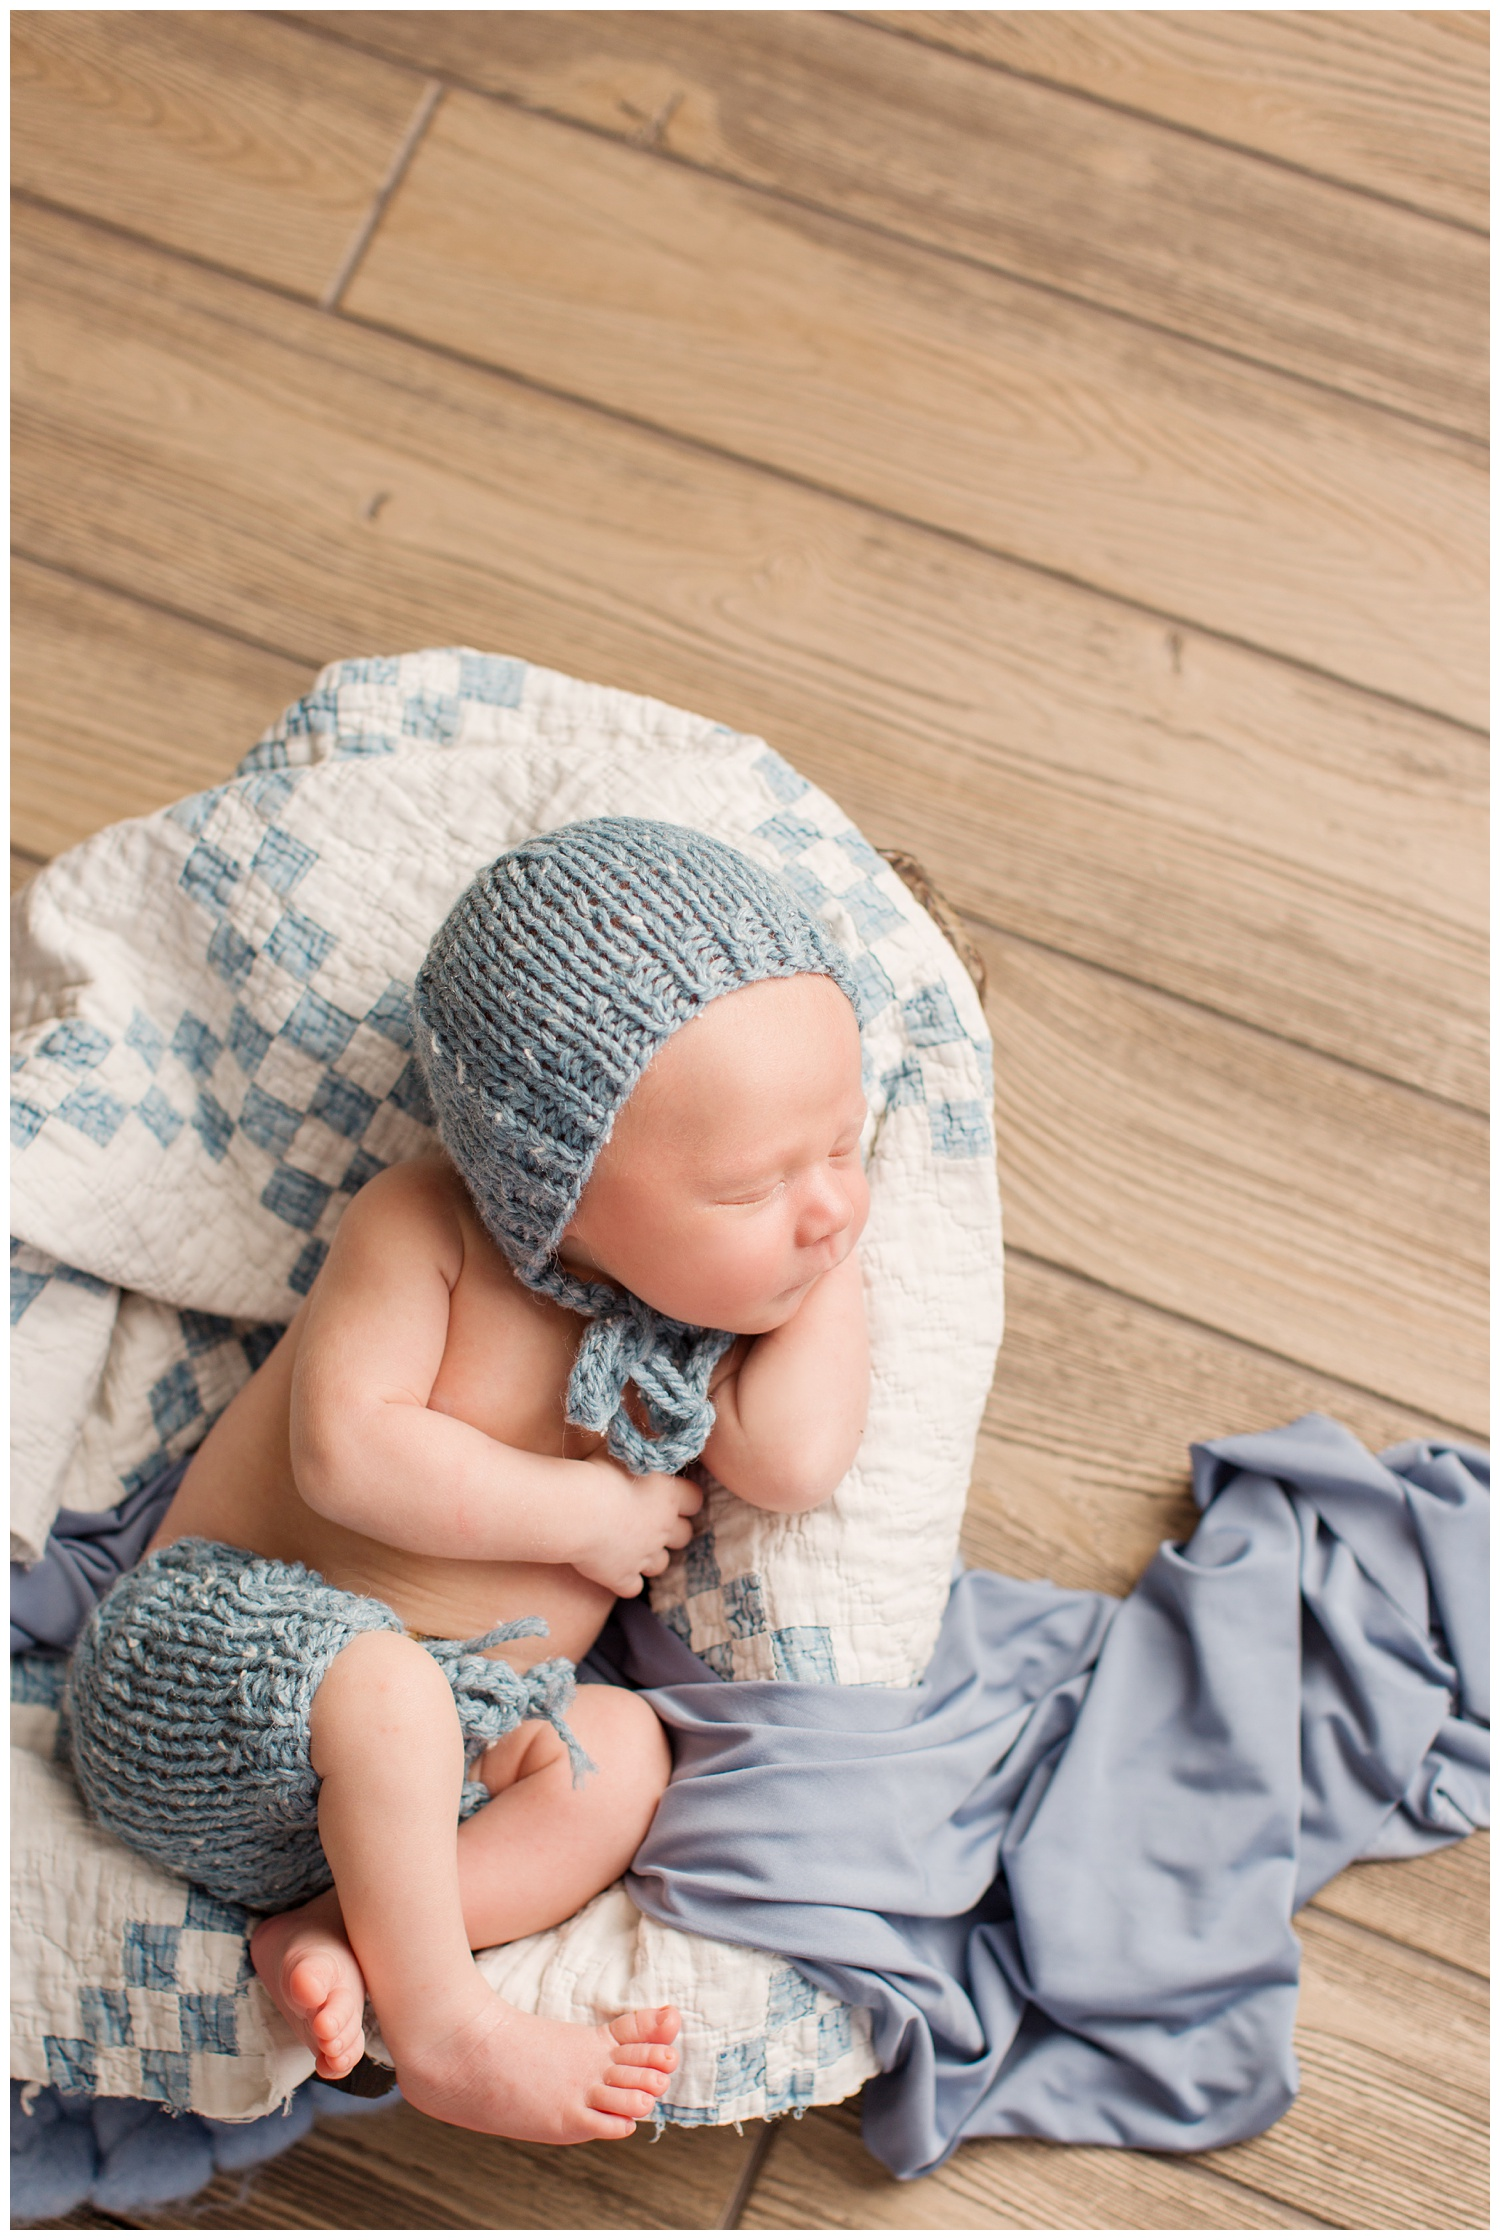 Newborn baby laying in a bowl covered with a quilt wearing a blue knit bonnet and shorts